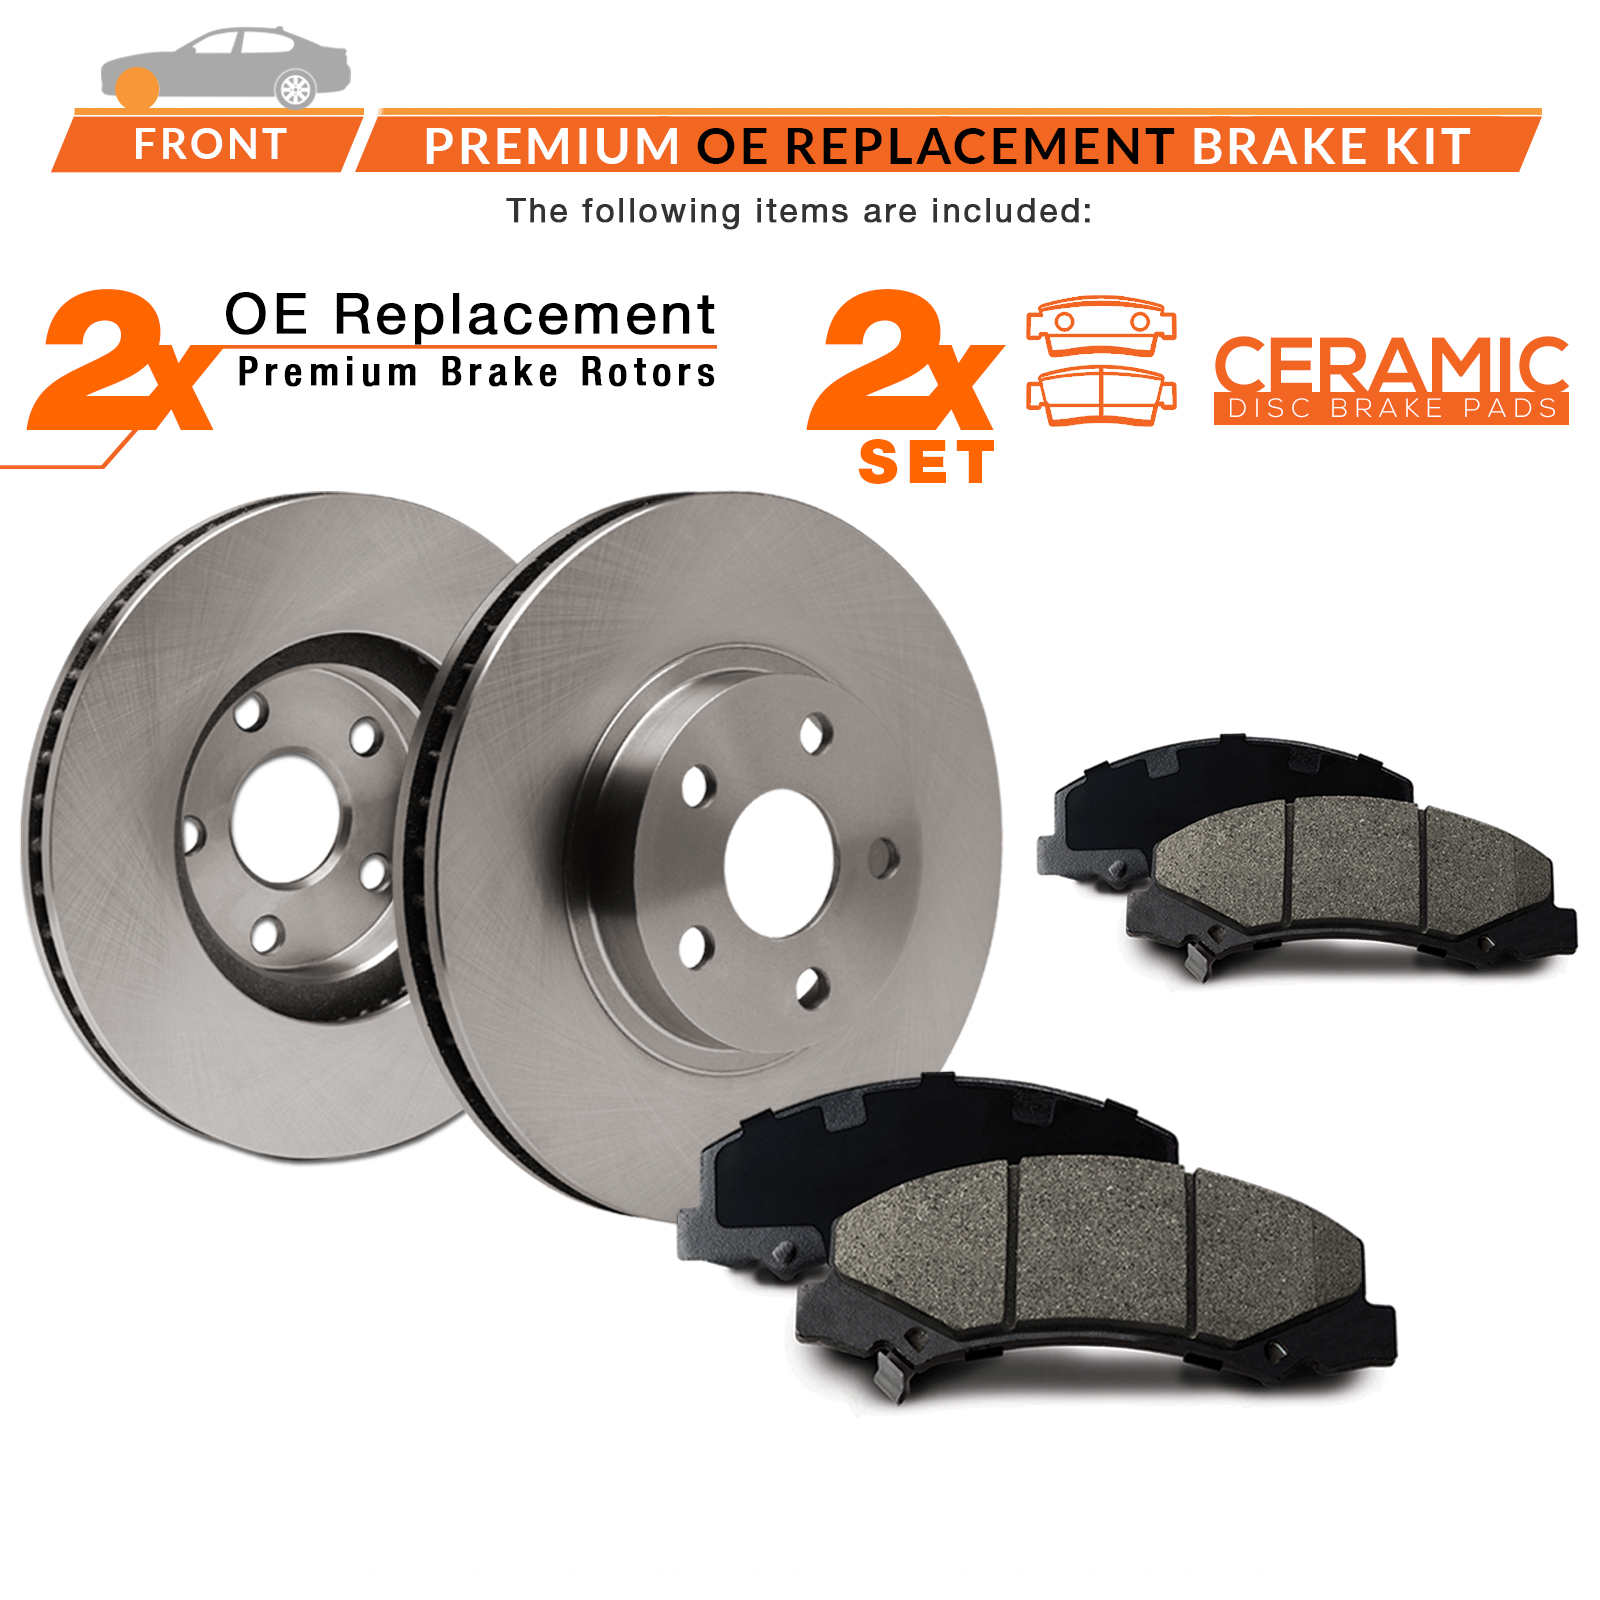 2003-Chrysler-PT-Cruiser-Non-Turbo-OE-Replacement-Rotors-w-Ceramic-Pads-F